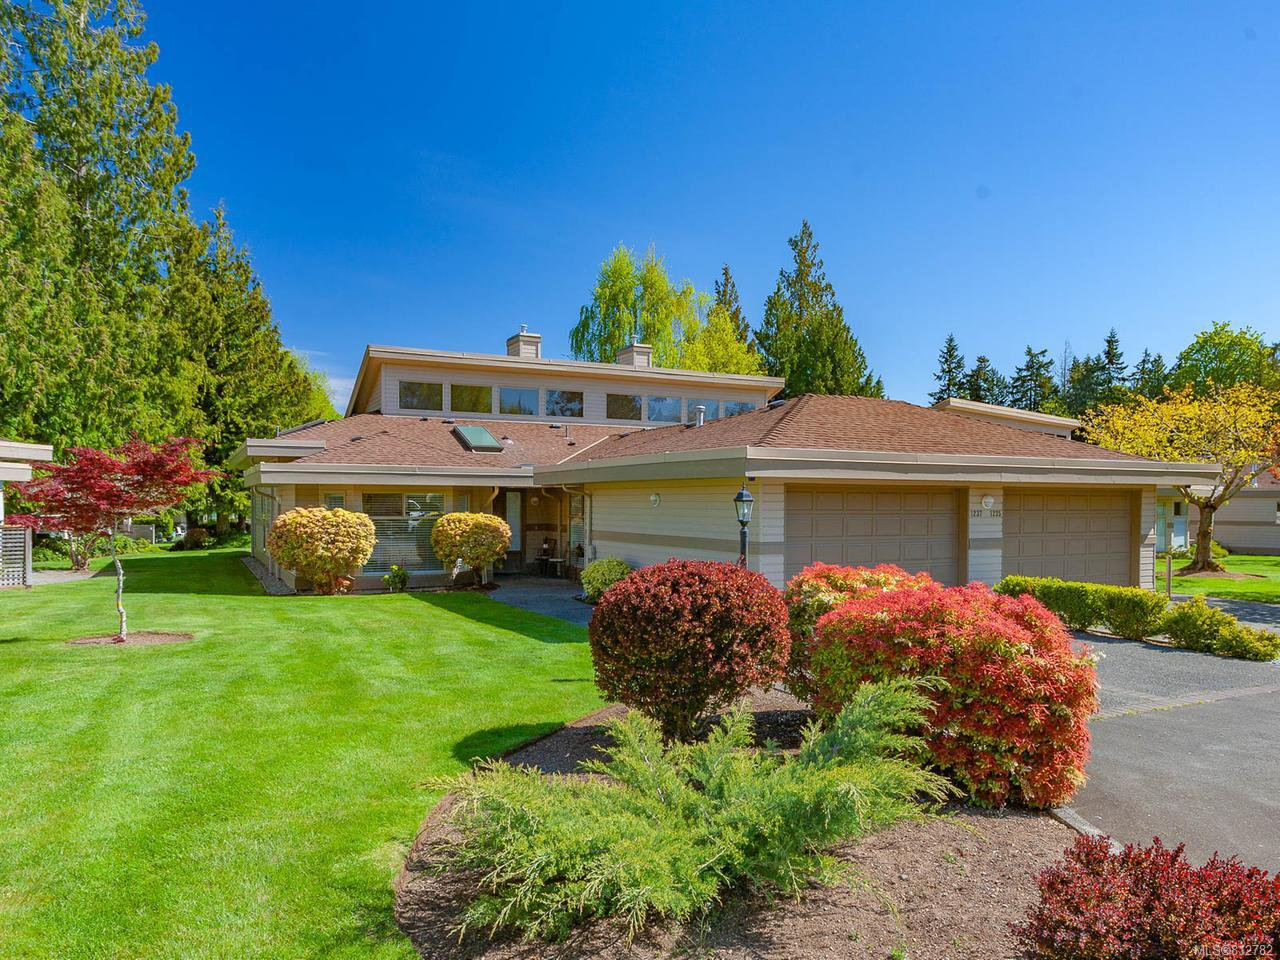 Main Photo: 1237 Pond Pl in FRENCH CREEK: PQ French Creek Row/Townhouse for sale (Parksville/Qualicum)  : MLS®# 812782